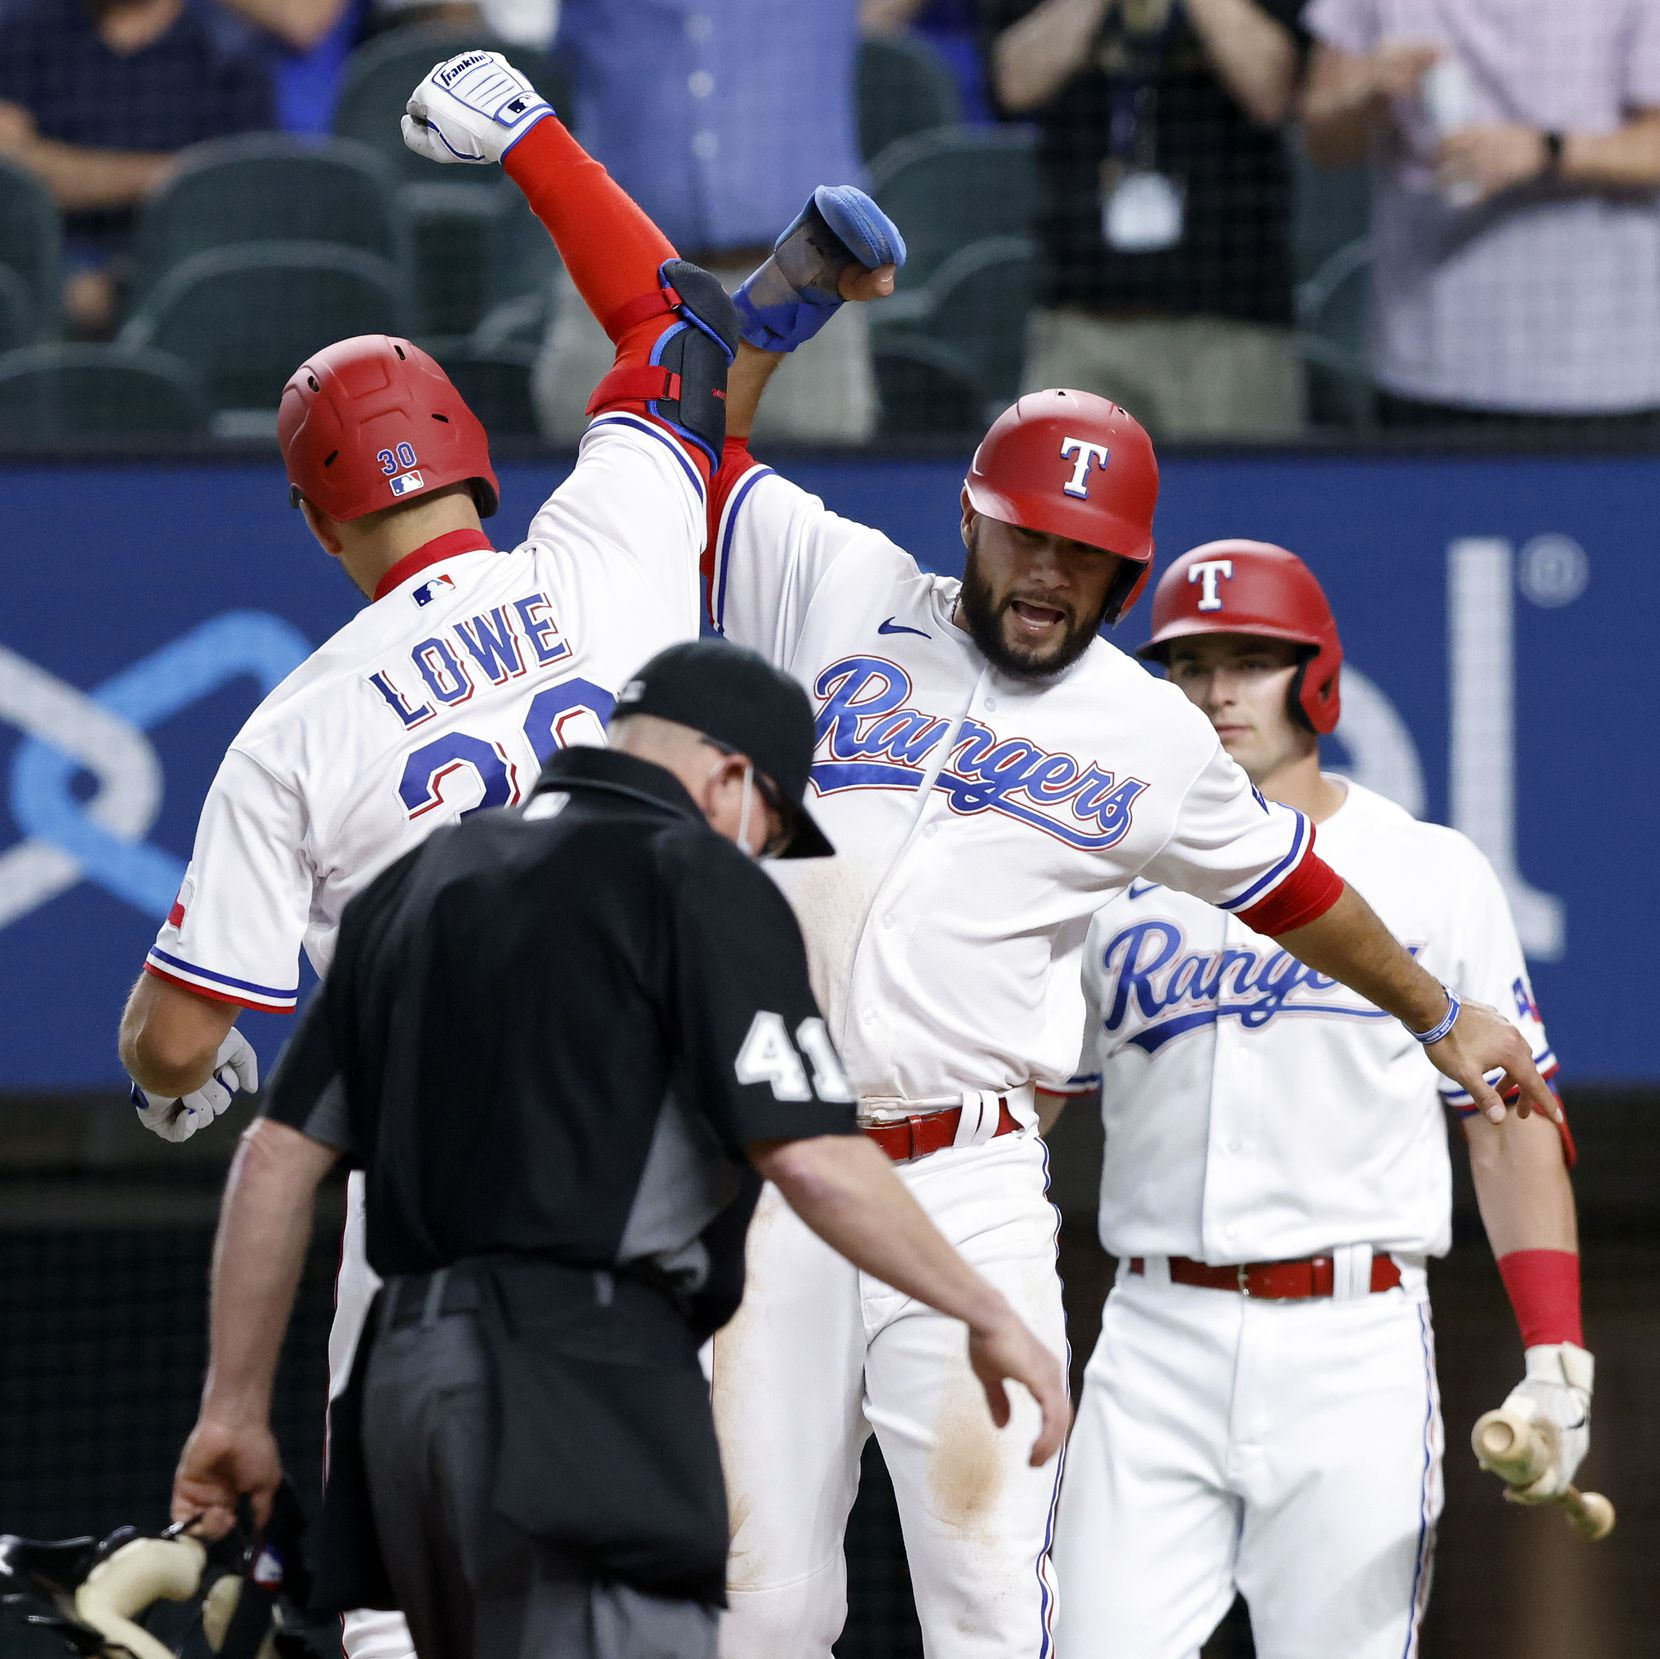 Texas Rangers Nate Lowe (30) is congratulated by teammate Isiah Kiner-Falefa (9) after driving him on a two-rbi home run during first inning against the Toronto Blue Jays at Globe Life Field in Arlington, Tuesday, April 7, 2021. (Tom Fox/The Dallas Morning News)